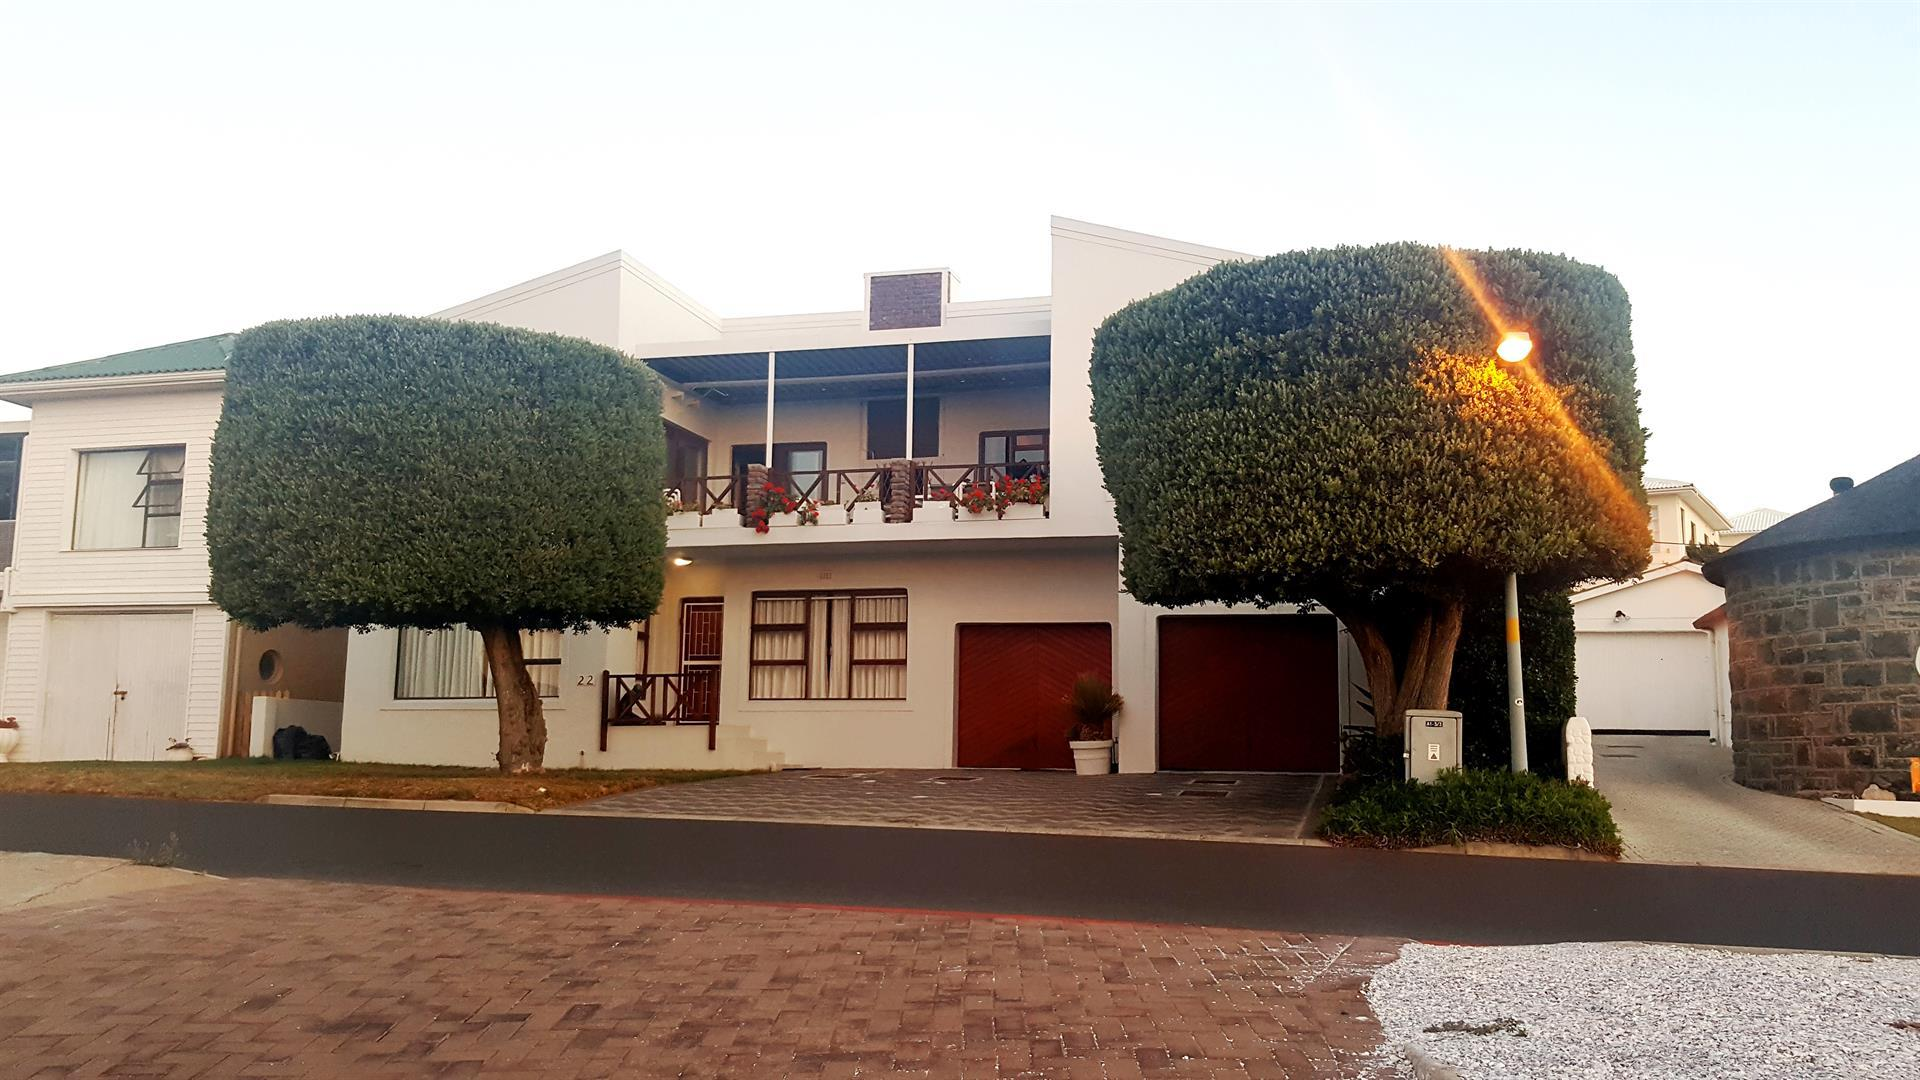 Yzerfontein, Yzerfontein Property  | Houses For Sale Yzerfontein, Yzerfontein, House 6 bedrooms property for sale Price:5,850,000